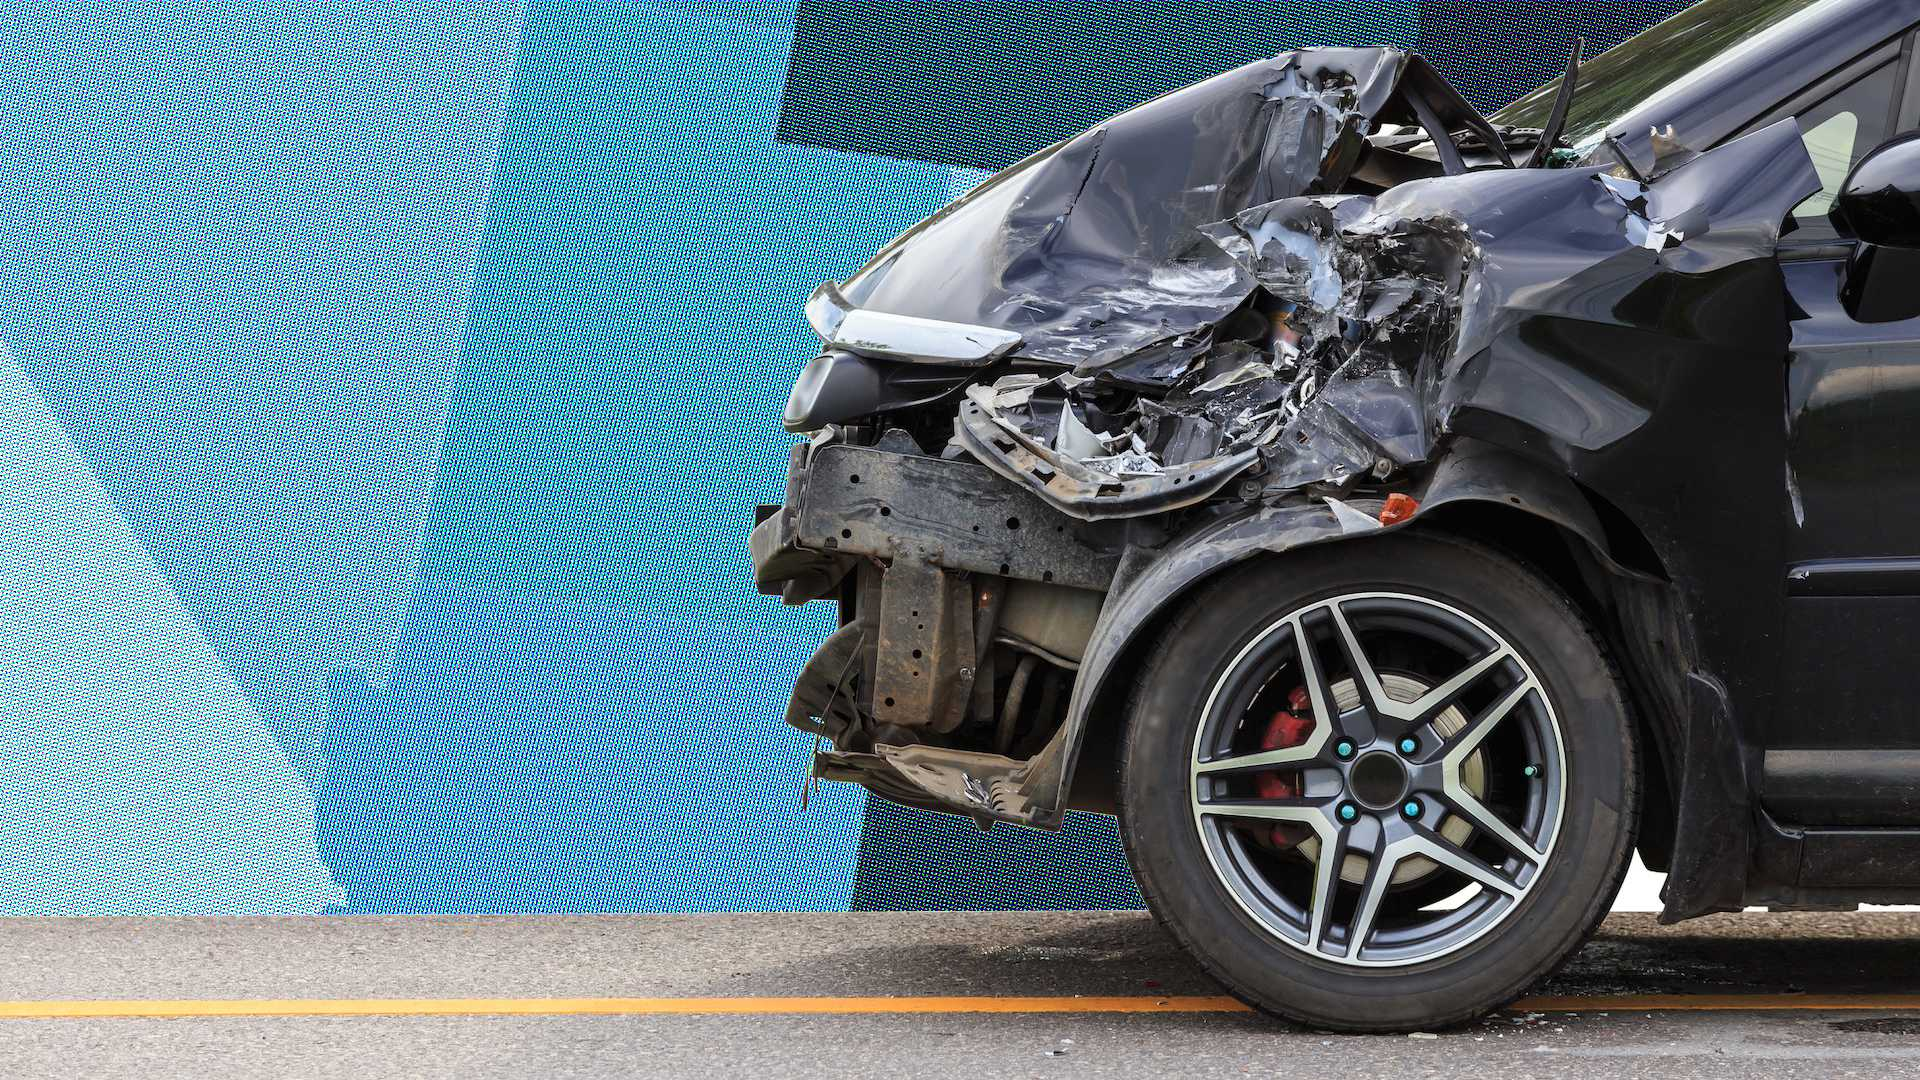 10 Worst States For Raising Insurance Rates After An Auto Accident